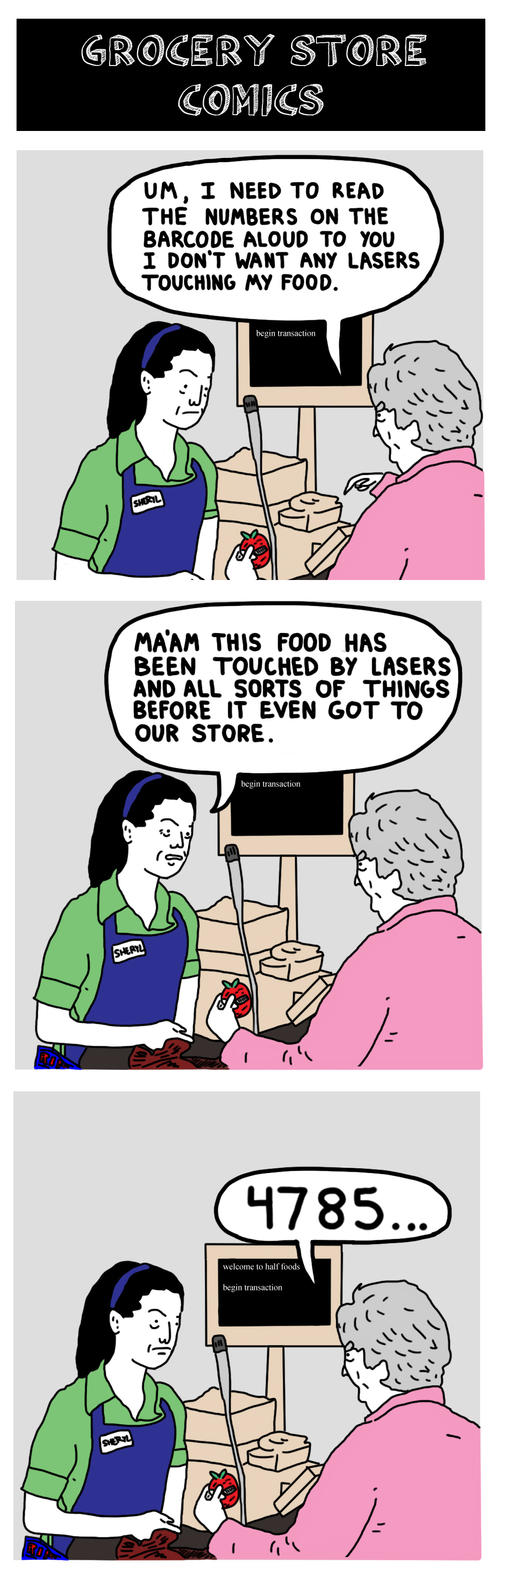 Grocery Store Comics by bobbymono